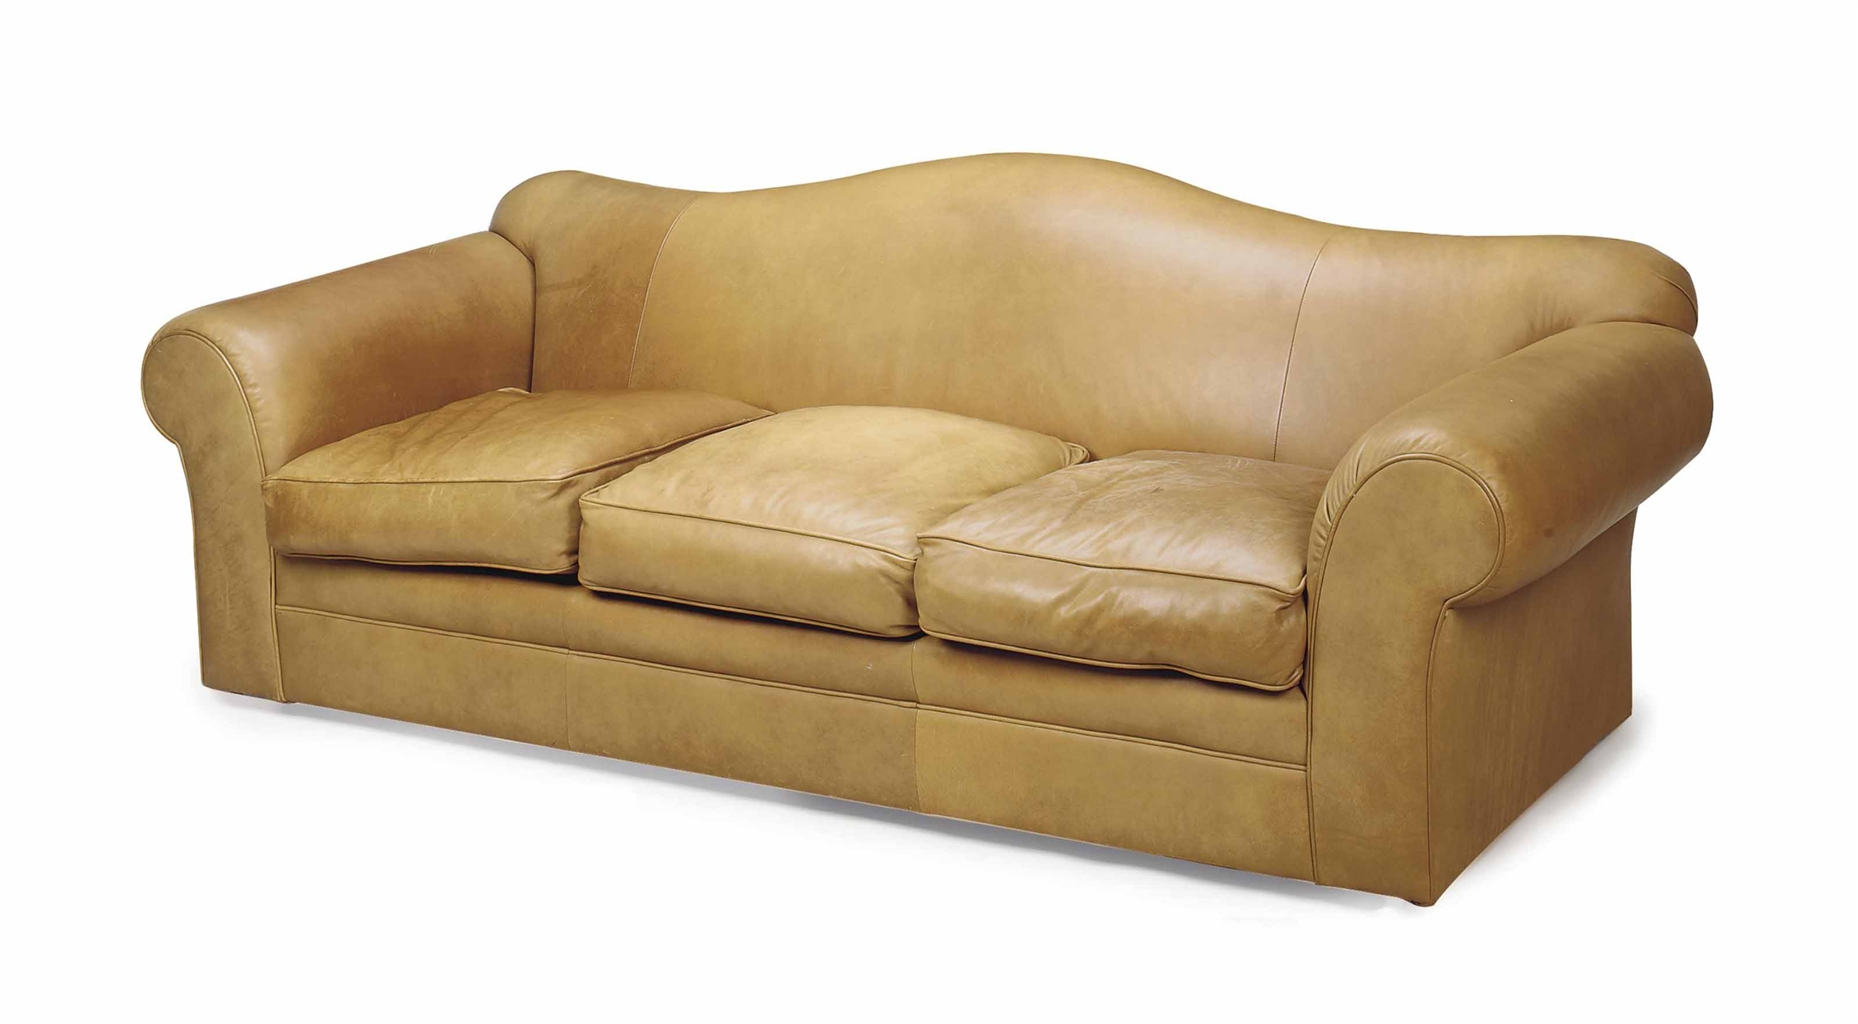 Two Leather Upholstered Sofas Ralph Lauren Modern Interiors Auction Sofa Furniture